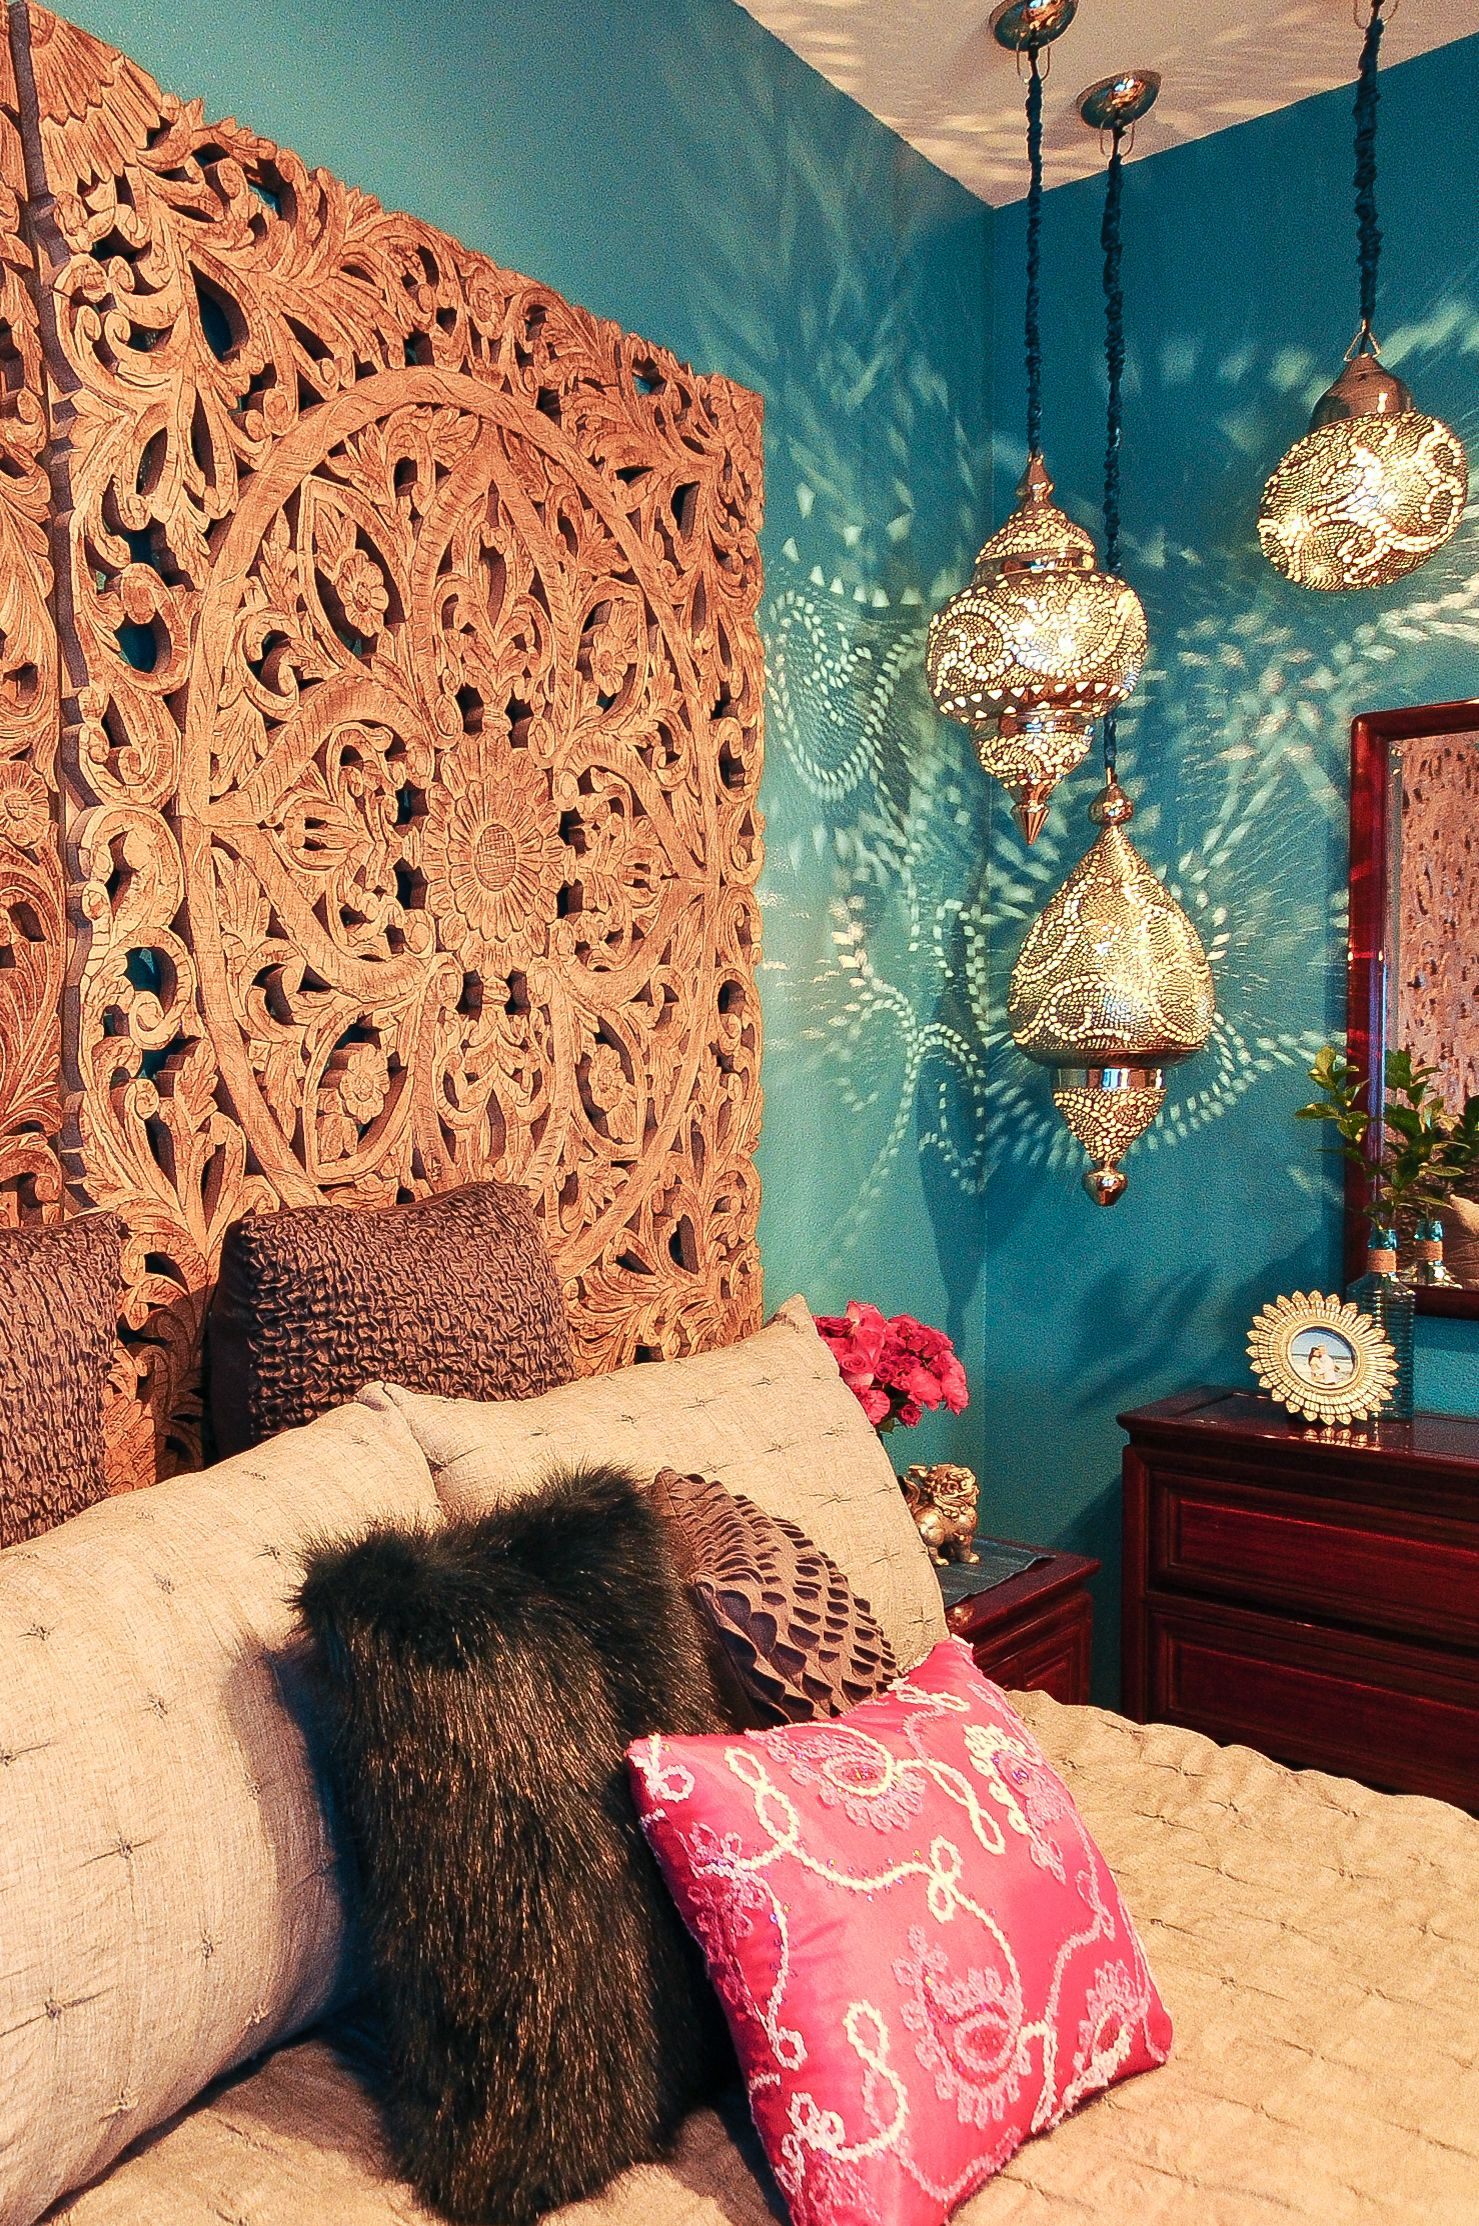 Rich Teal Walls Moroccan Lanterns And A Dramatic Headboard Made From A Pair Of Antique Carved